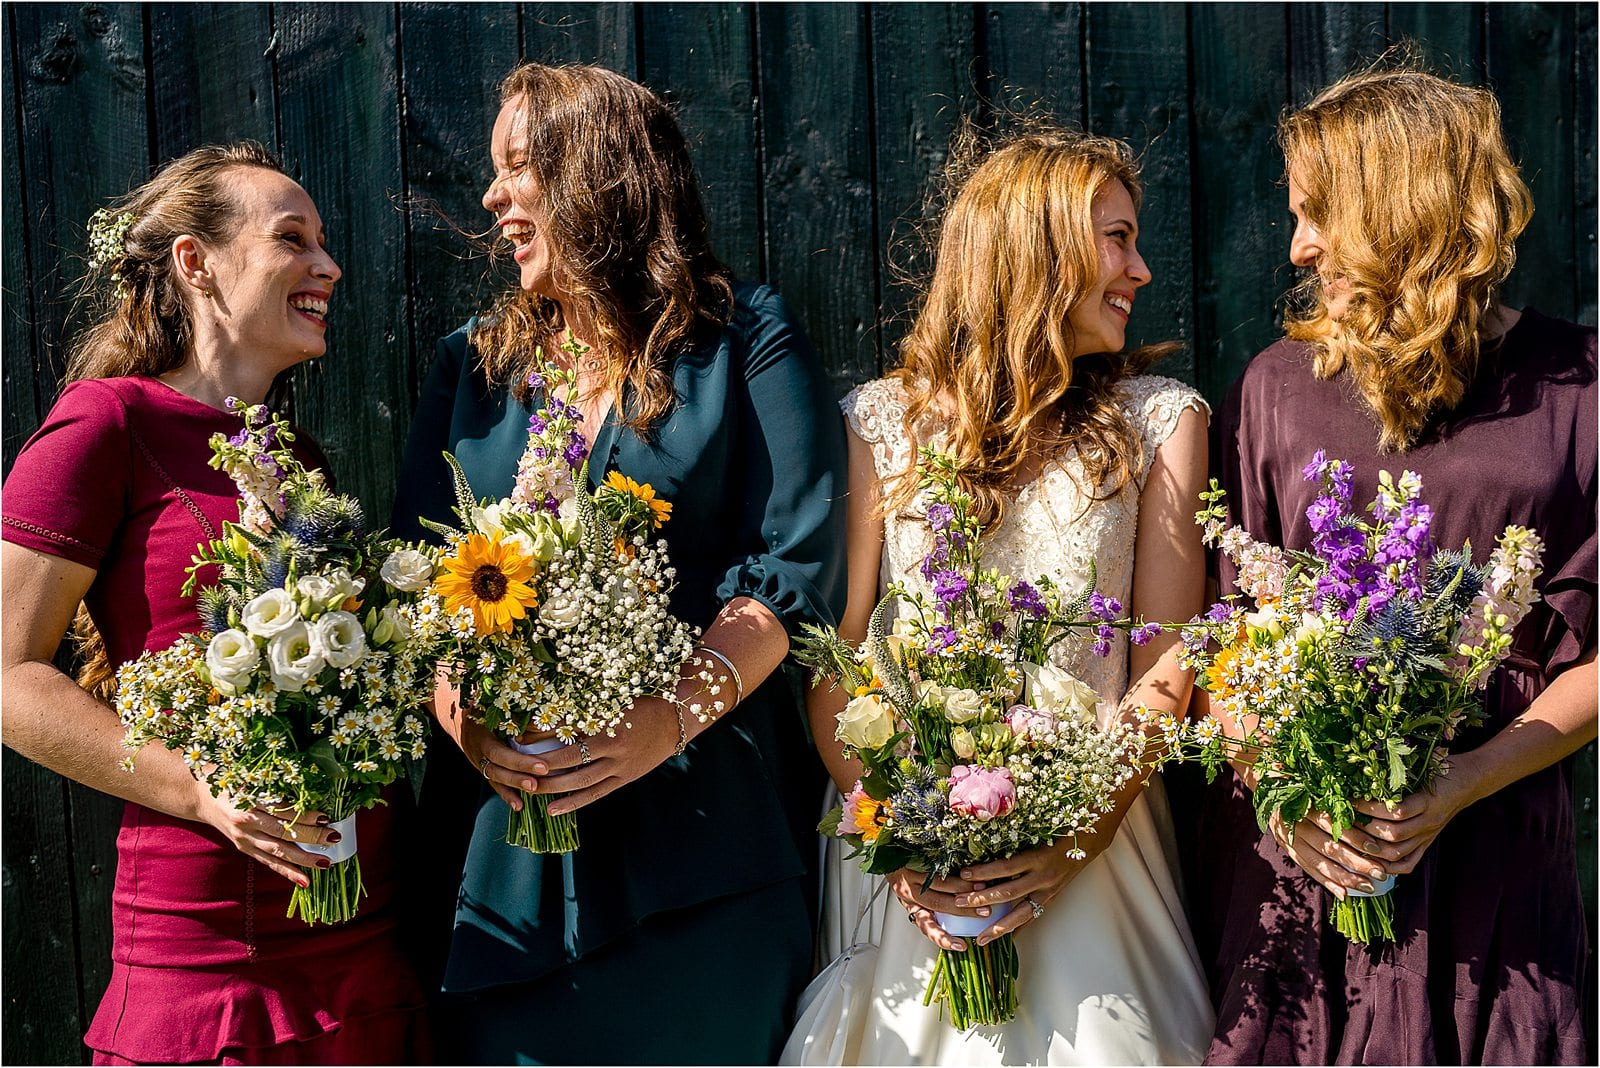 where to start with wedding planning - newly engaged - image of bride with bridesmaids laughing